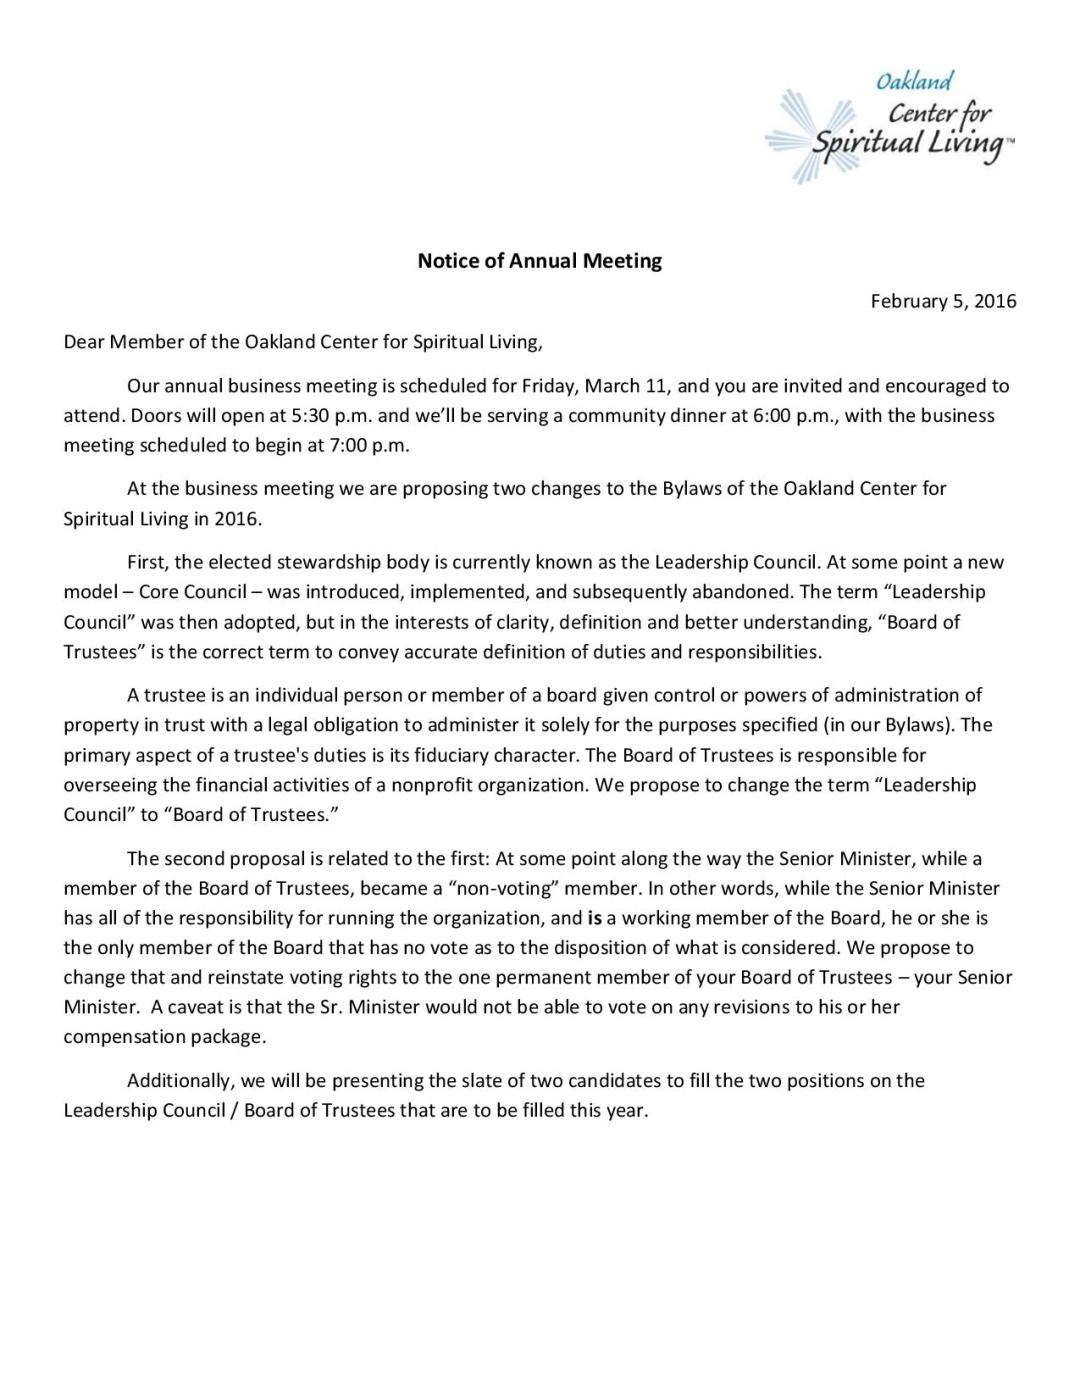 Annual Meeting letter 2016-page-001